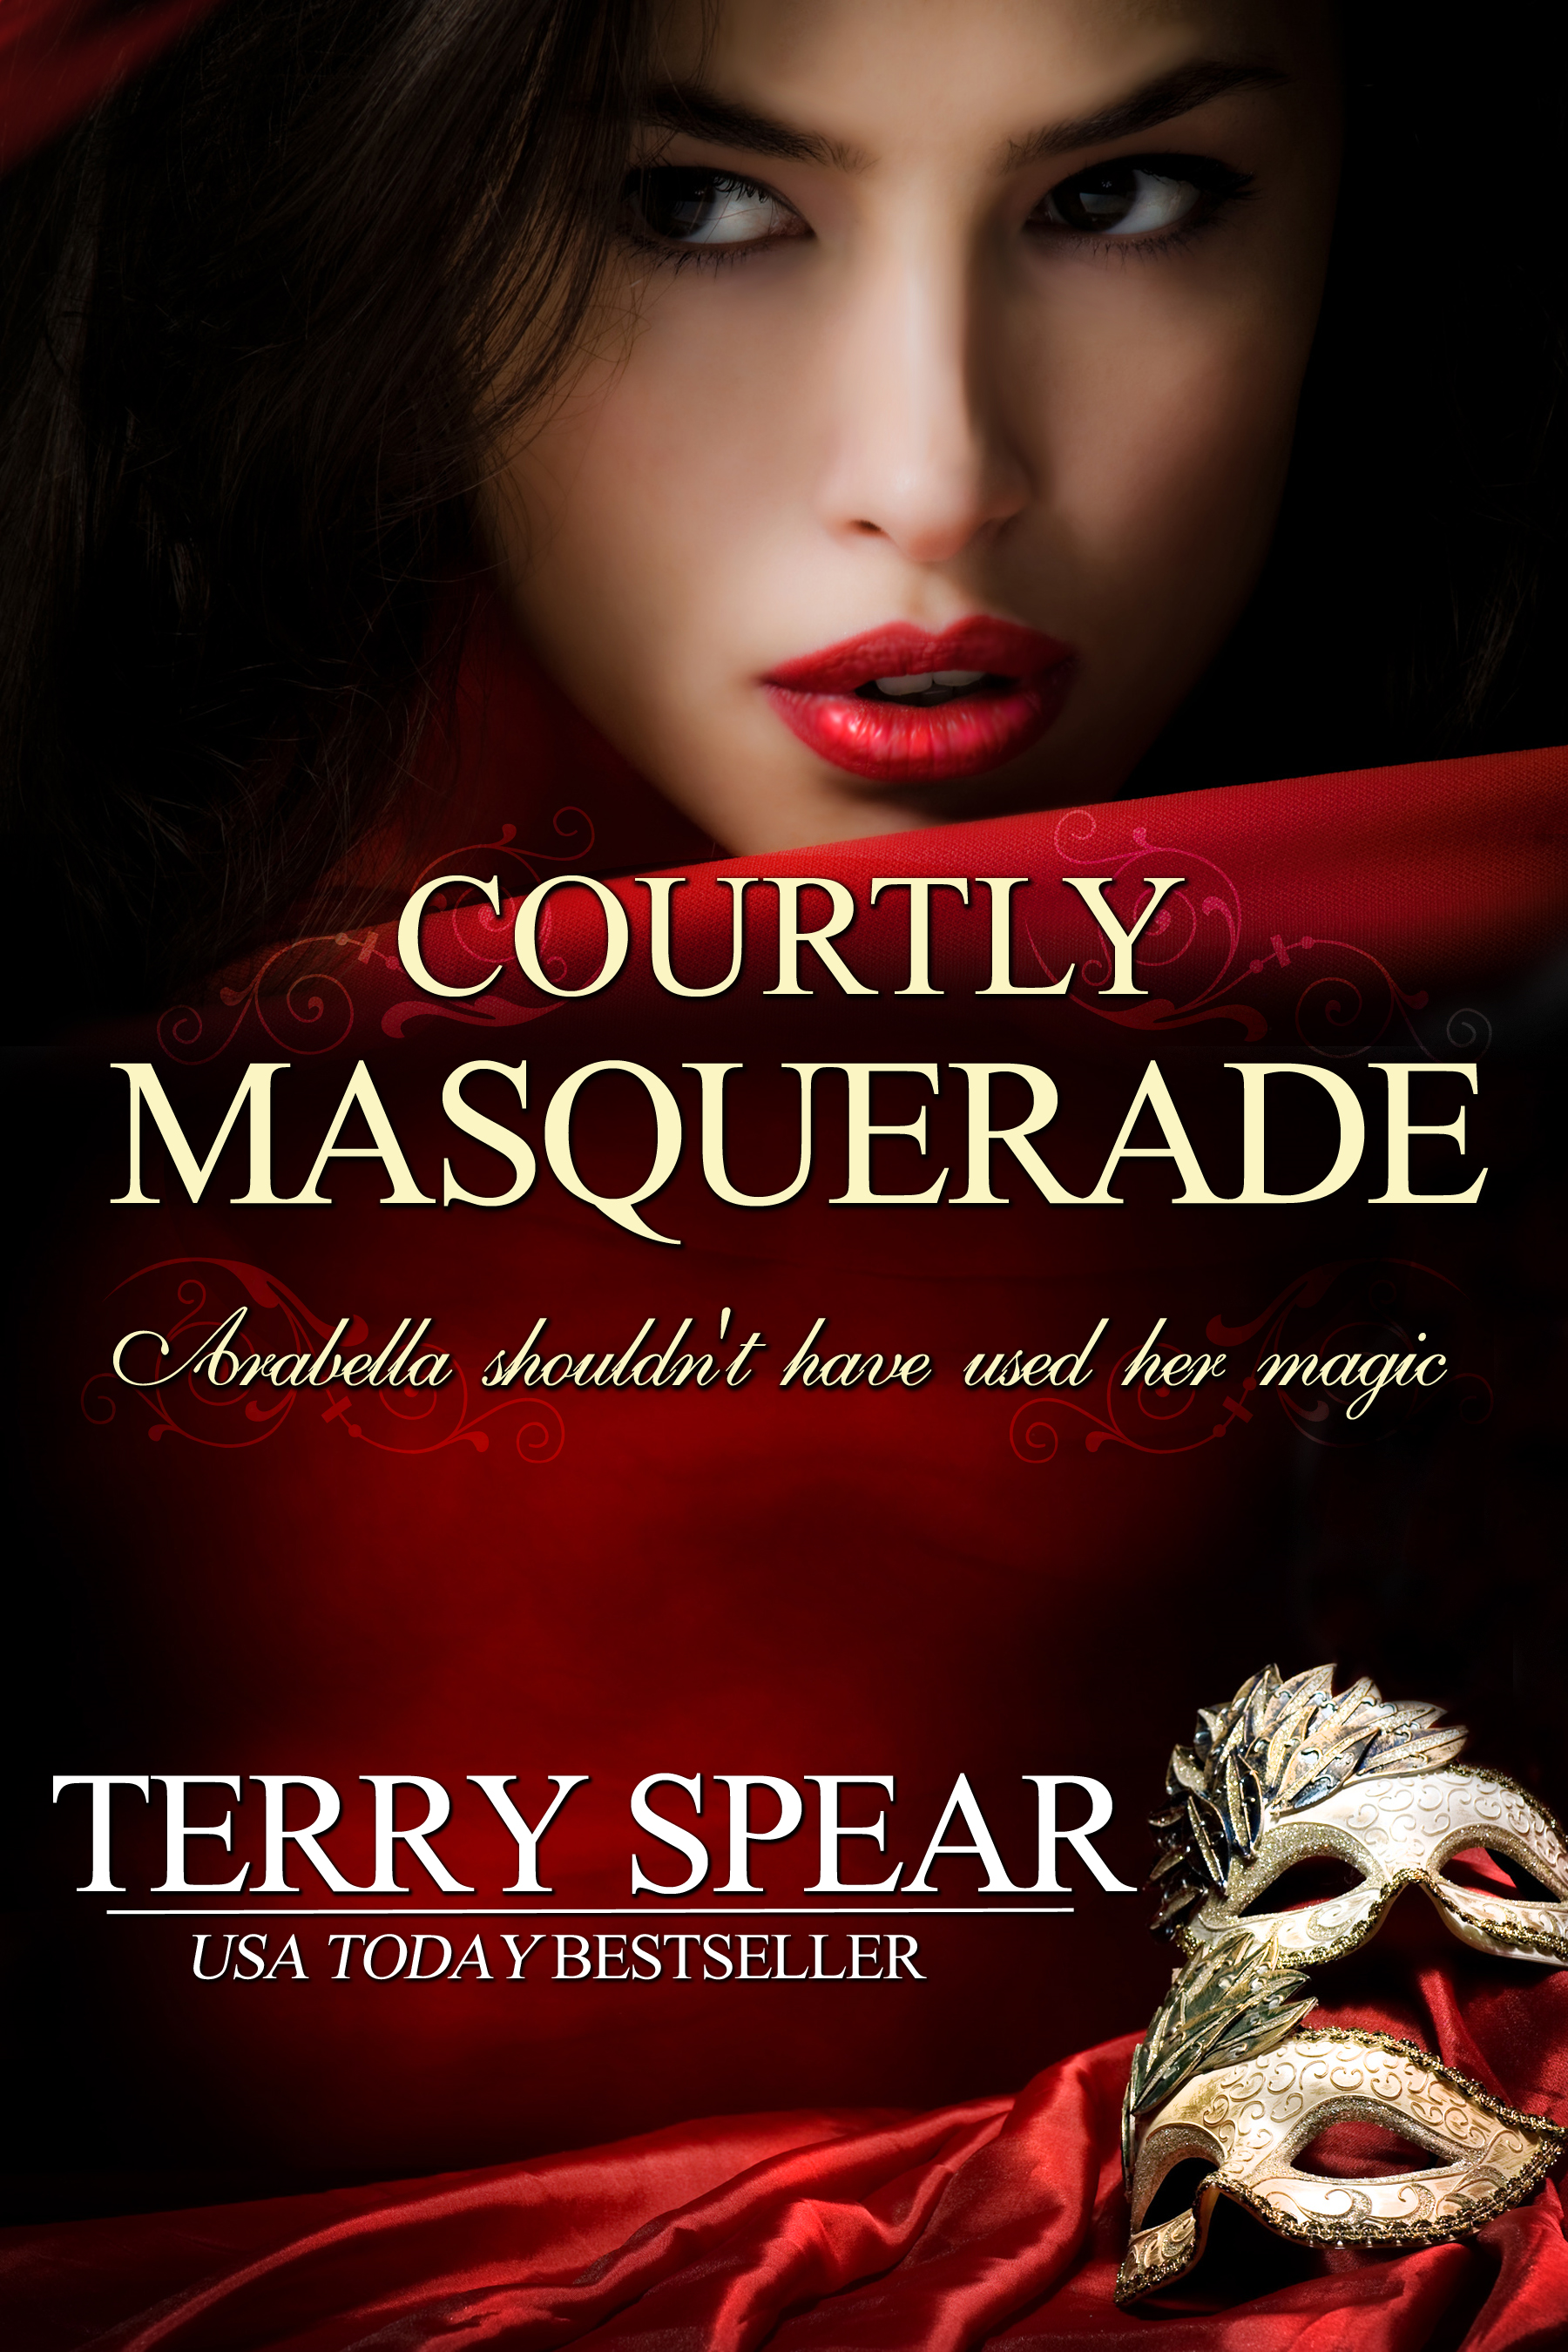 Courtly Masquerade By: Terry Spear